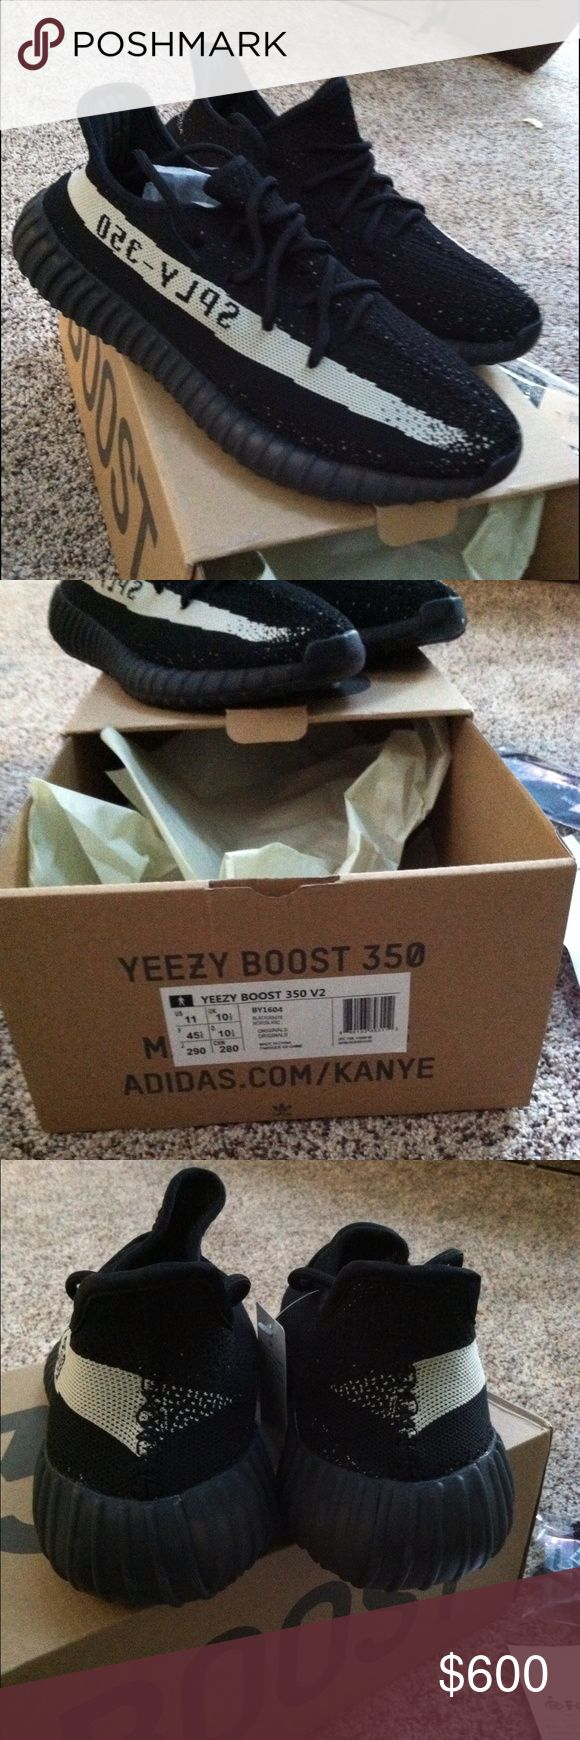 Yeezy boost Adidas V2 men's 11 Brand new yeezy shoes. Men's 11. Brand new from Adidas. Never wore these. Will include the box, shoes, socks, keychain. I accept offers. I have the reciept from footlocker. Adidas Shoes Sneakers